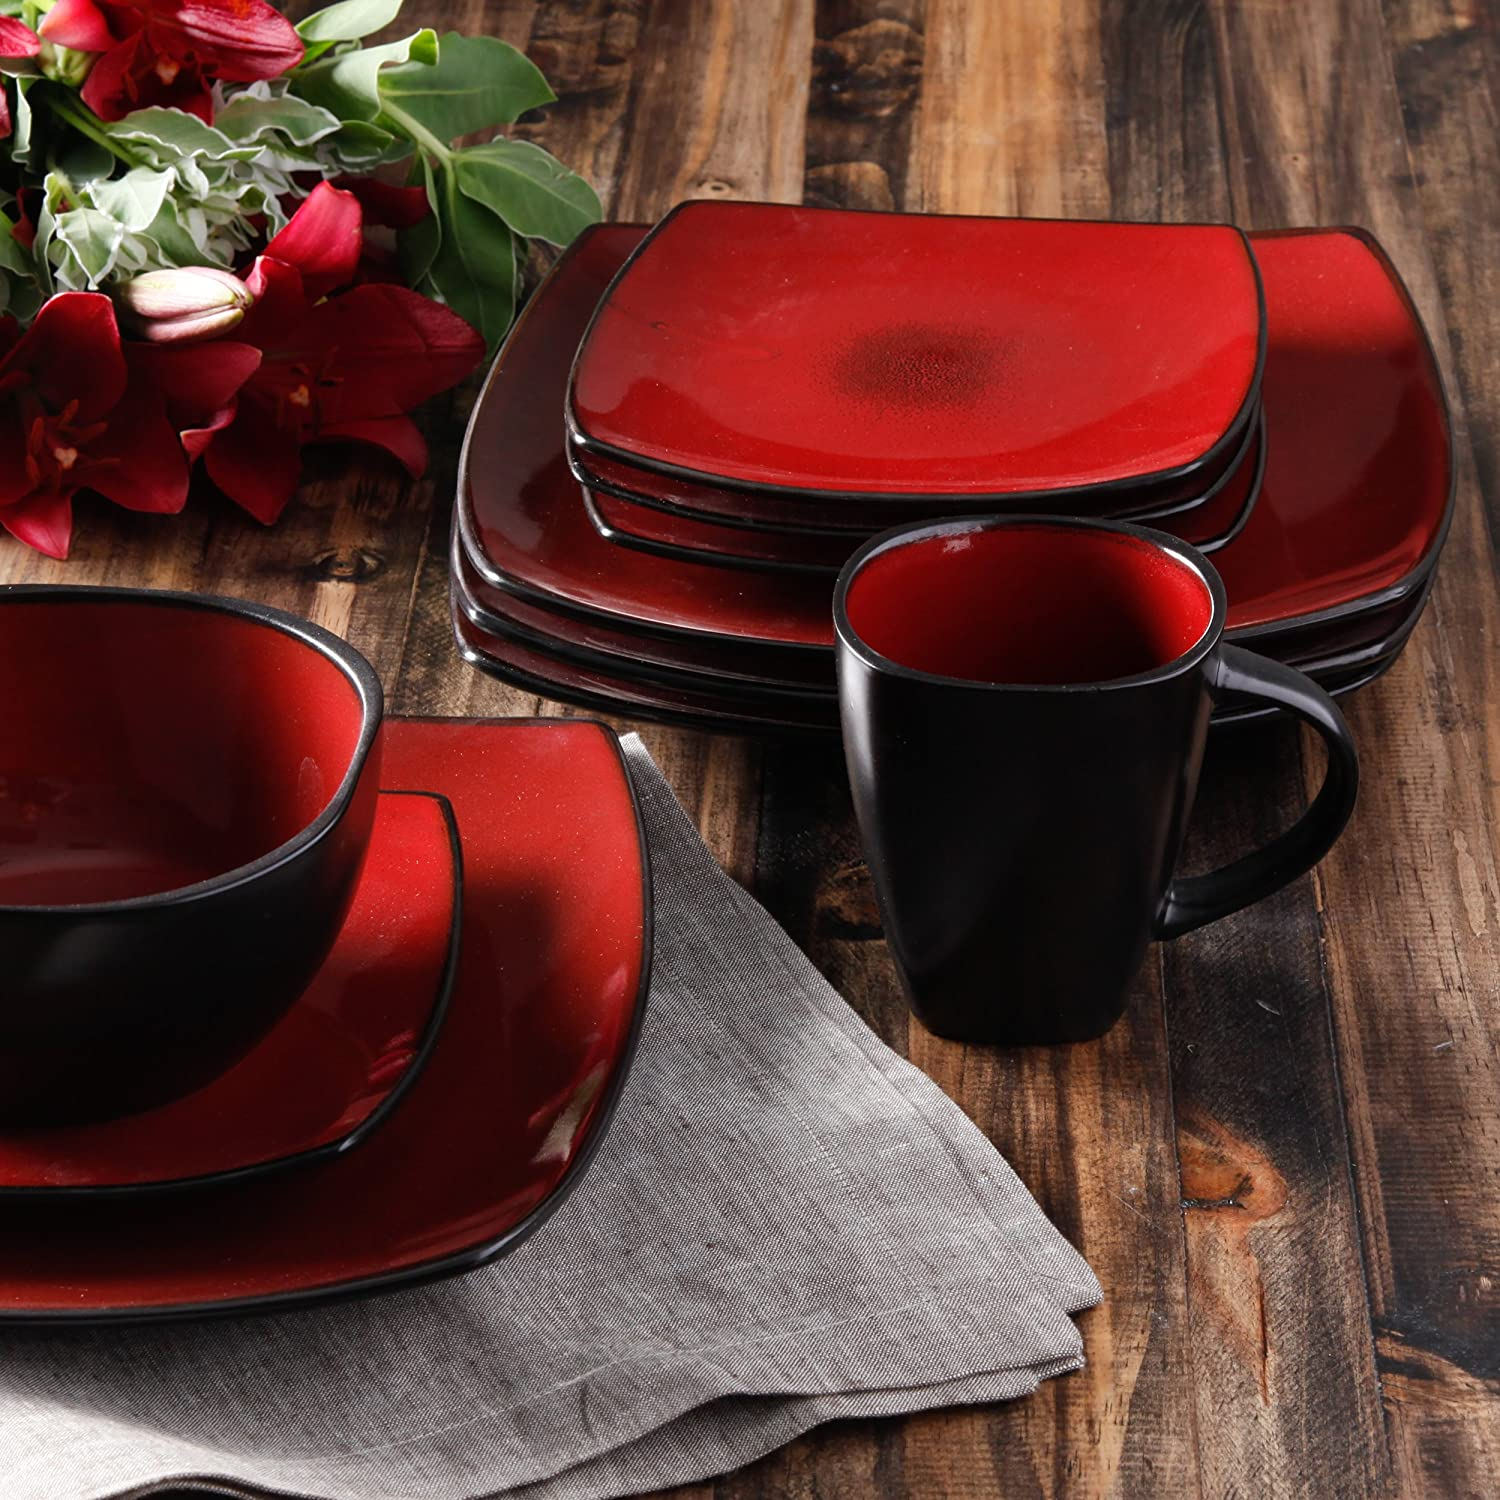 The Best Dinnerware Sets In 2018: Choosing Among The Top-Rated Plates And Bowls 2